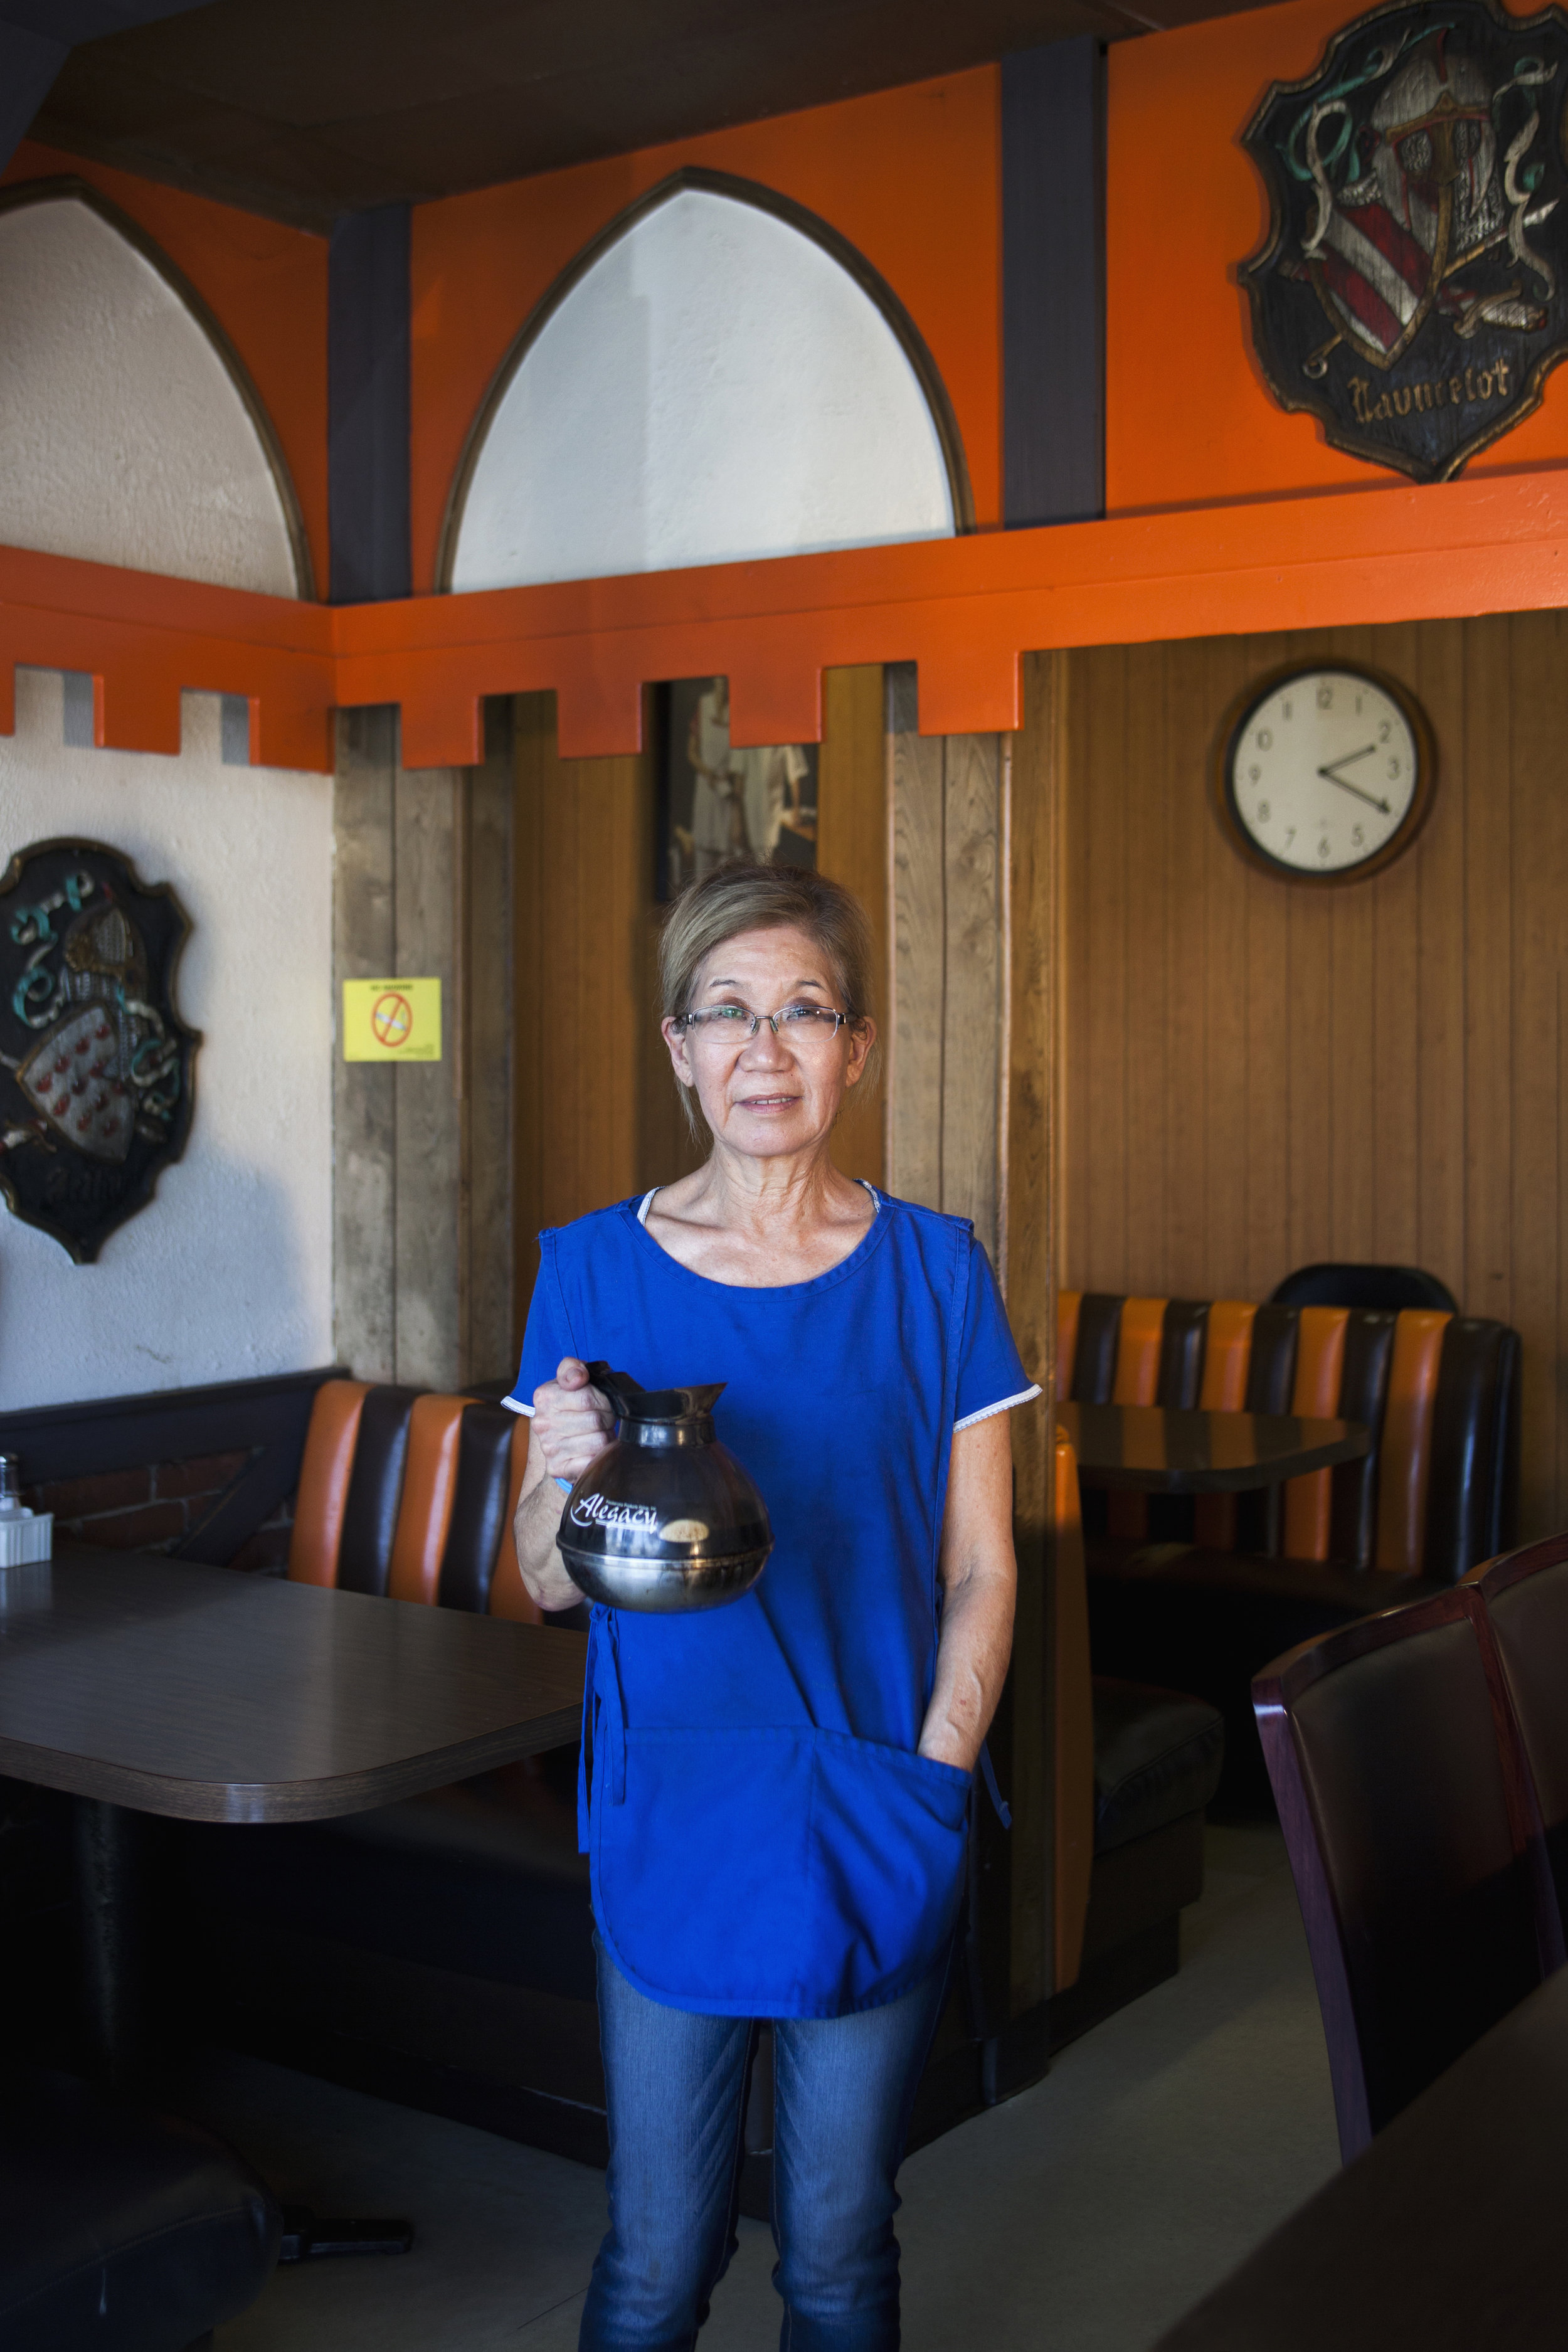 """Linda Yamamoto - Linda Yamamoto, 65, works the 5 a.m. to 2 p.m. shift at Olympic Cafe, Mid-Wilshire. Her parents opened the restaurant in 1972 and she became a part of the family business when she was 21. """"I'll retire when I hate to be here or when I don't like the business. But for now, I love my customers and it gives me something to get up for."""""""